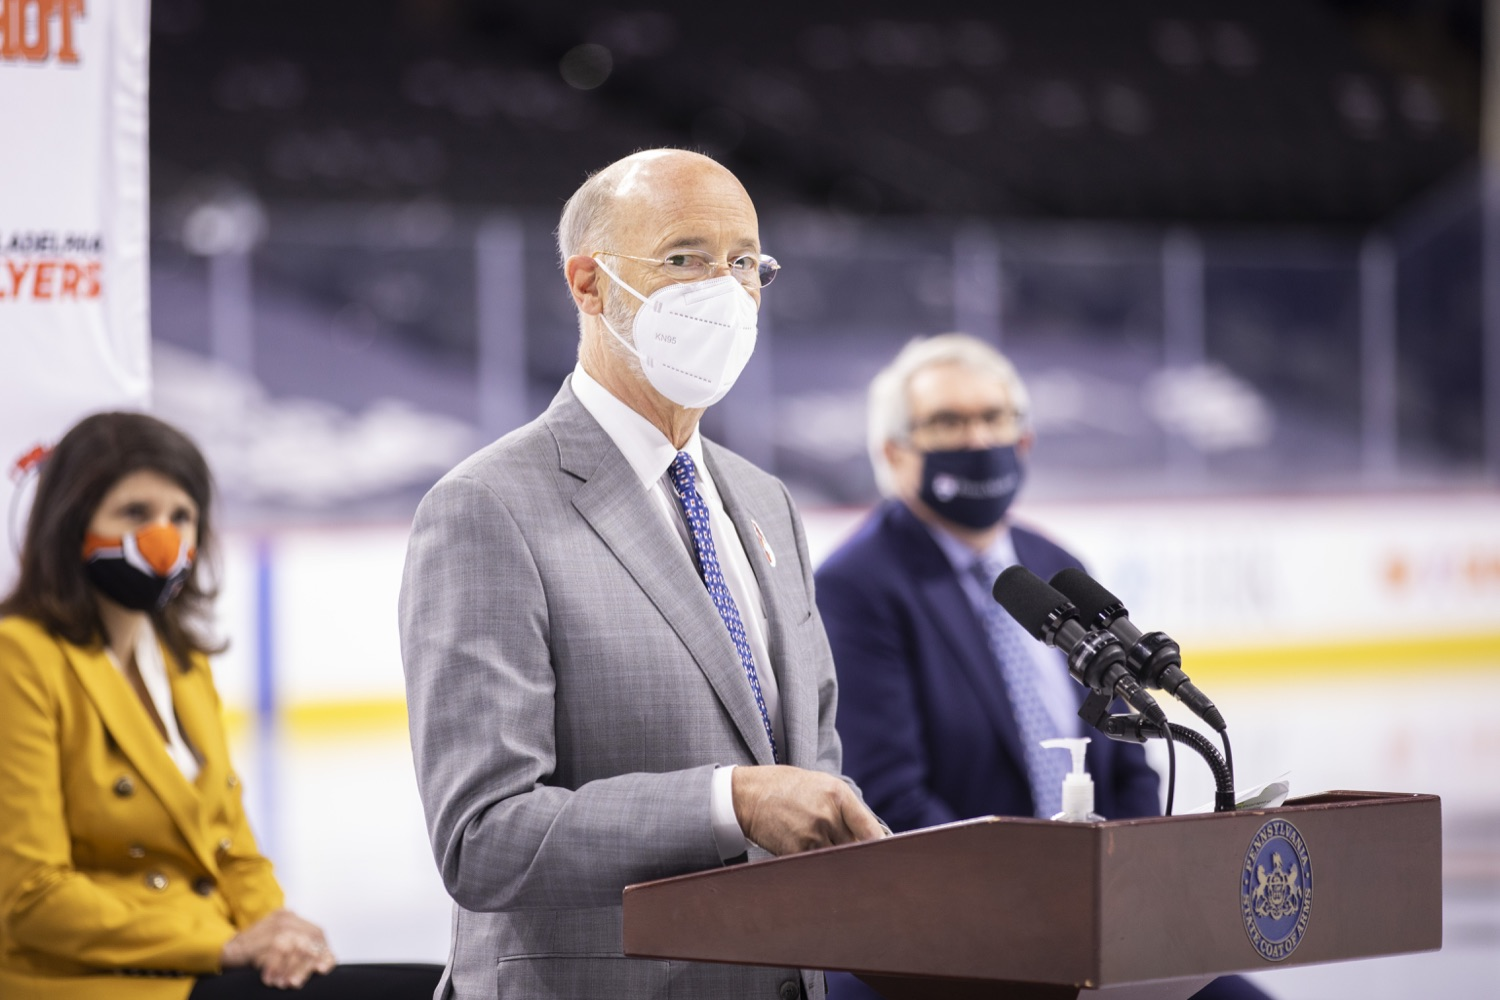 "<a href=""https://filesource.wostreaming.net/commonwealthofpa/photo/18727_gov_vaccines_dz_018.jpg"" target=""_blank"">⇣ Download Photo<br></a>Pennsylvania Governor Tom Wolf speaking with the press.   Governor Tom Wolf today visited the Philadelphia Flyers organization at the Wells Fargo Center in Philadelphia to discuss COVID-19 vaccine efforts in Pennsylvania. The Flyers recently launched a comprehensive COVID-19 vaccine campaign, Take Your Shot, encouraging Pennsylvanians to get vaccinated.  Philadelphia, PA  MAY 3, 2021"